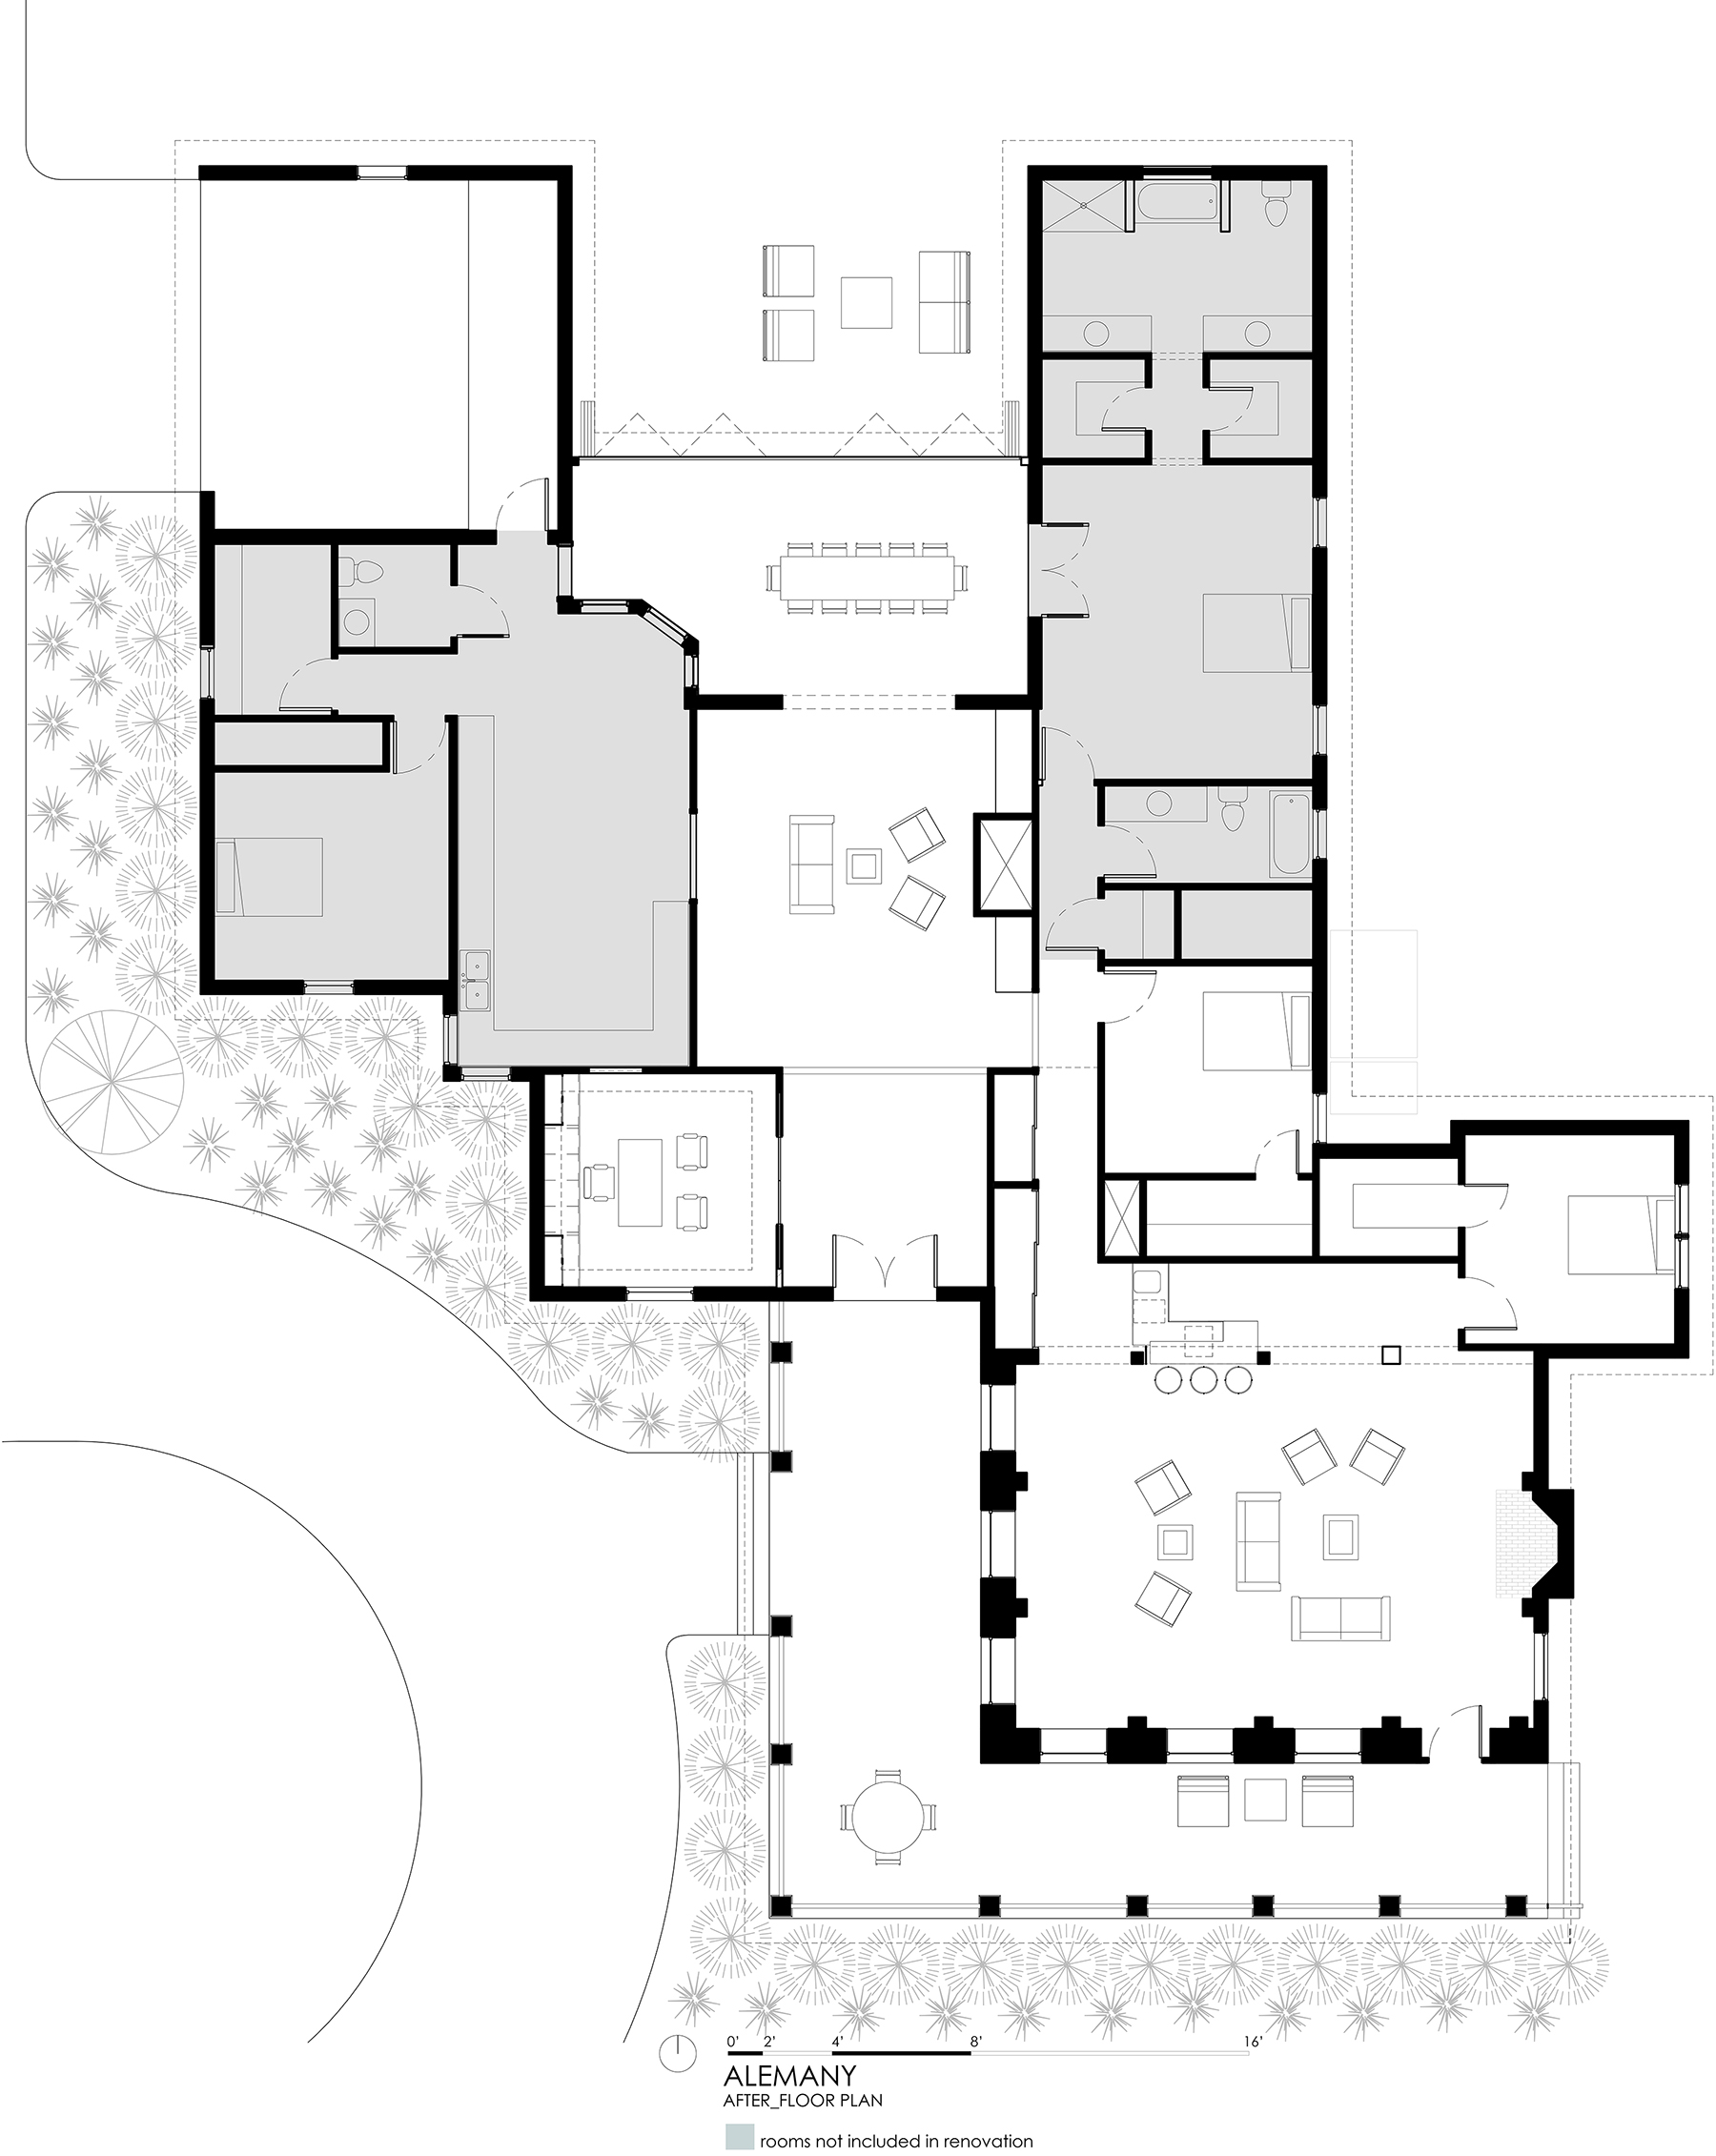 Alemany_After Floor Plan sm.jpg